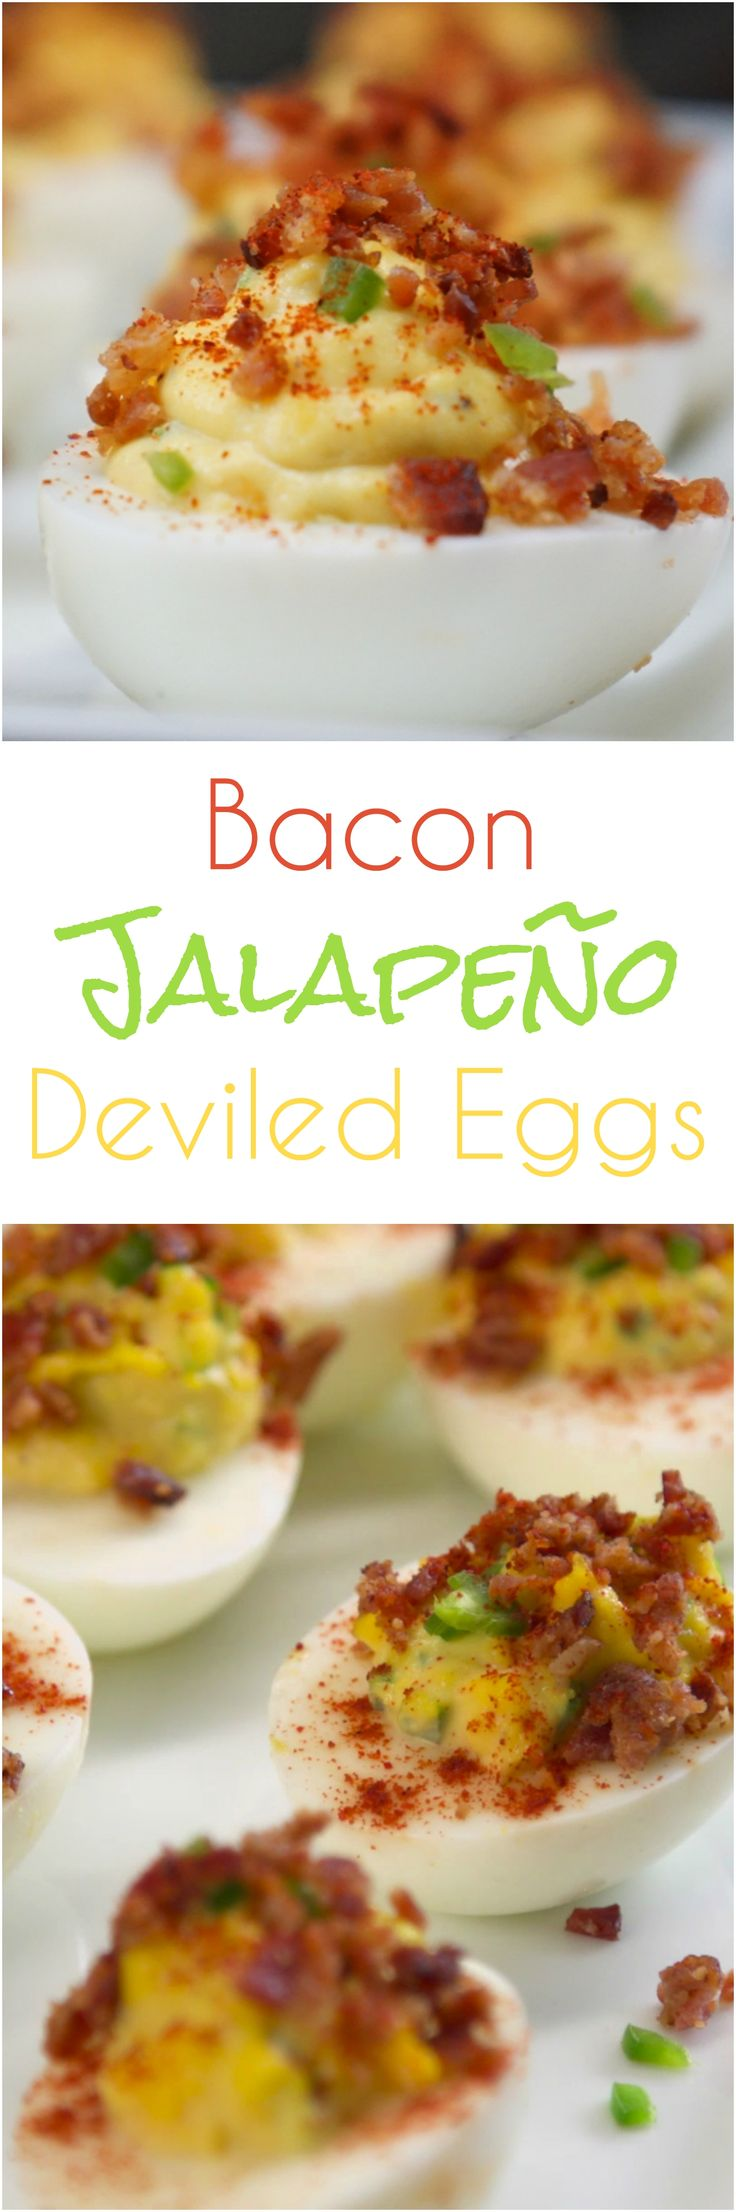 http://tiphero.com/bacon-jalapeno-deviled-eggs/